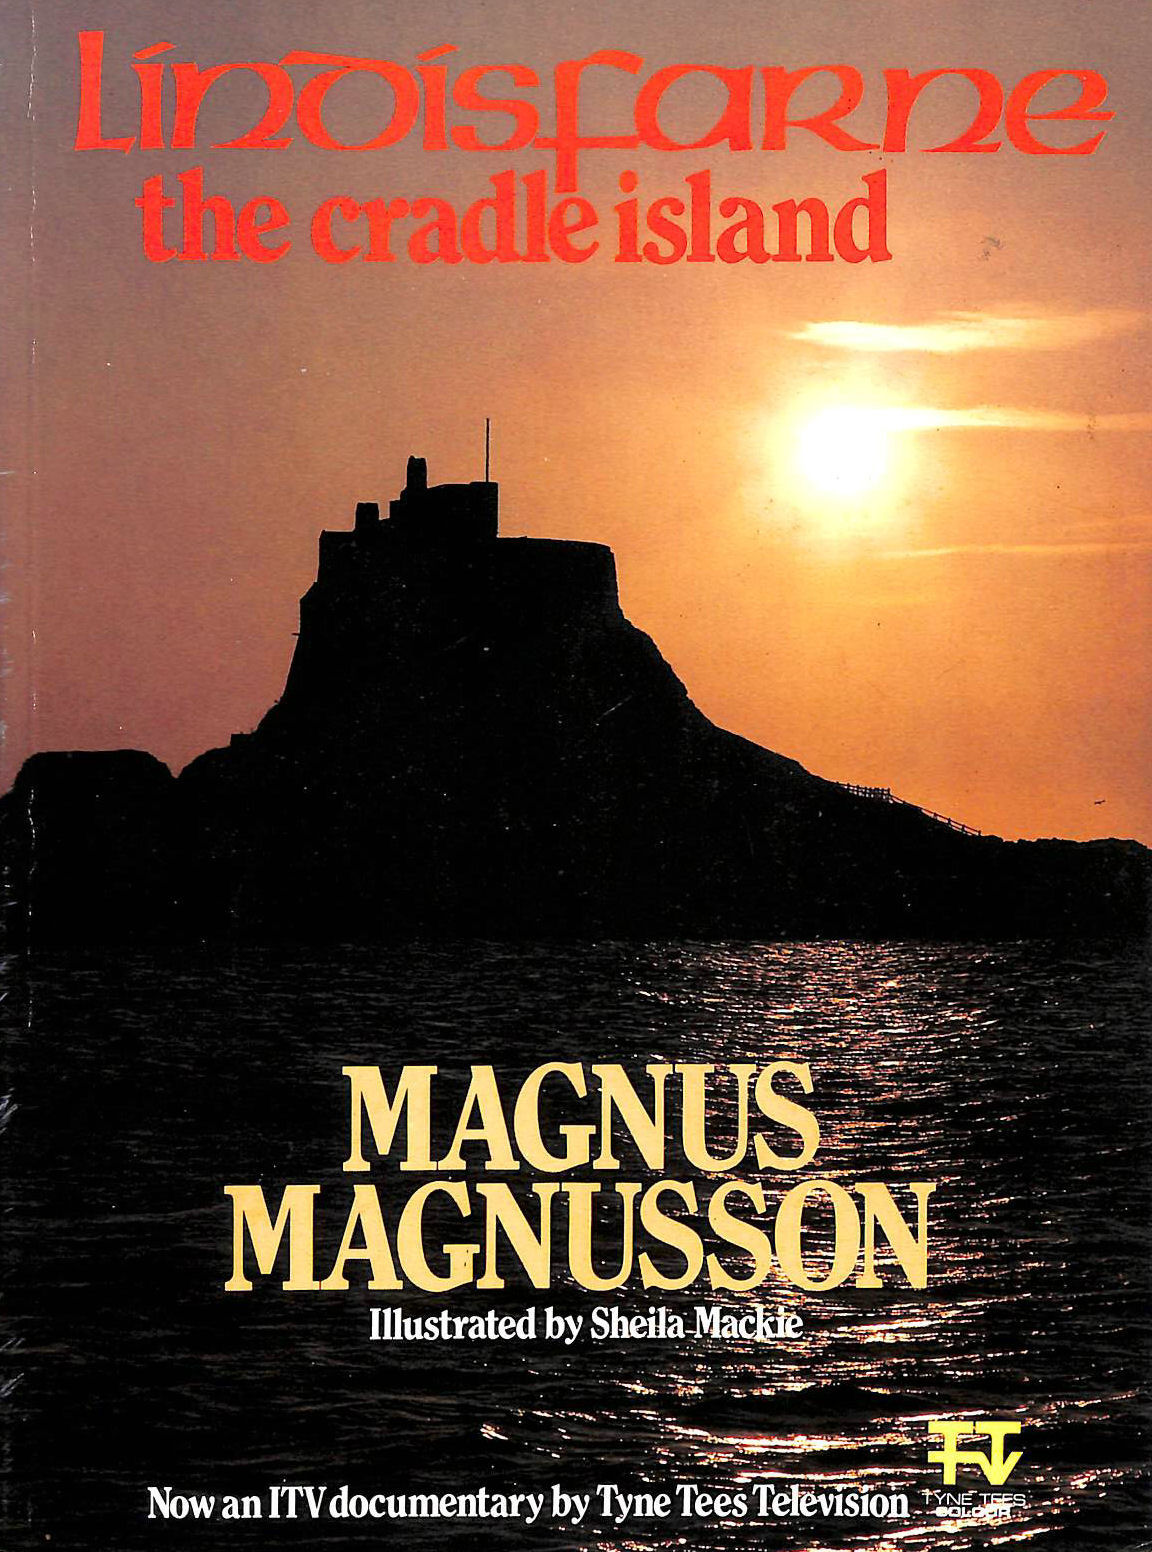 Image for Lindisfarne: The Cradle Island